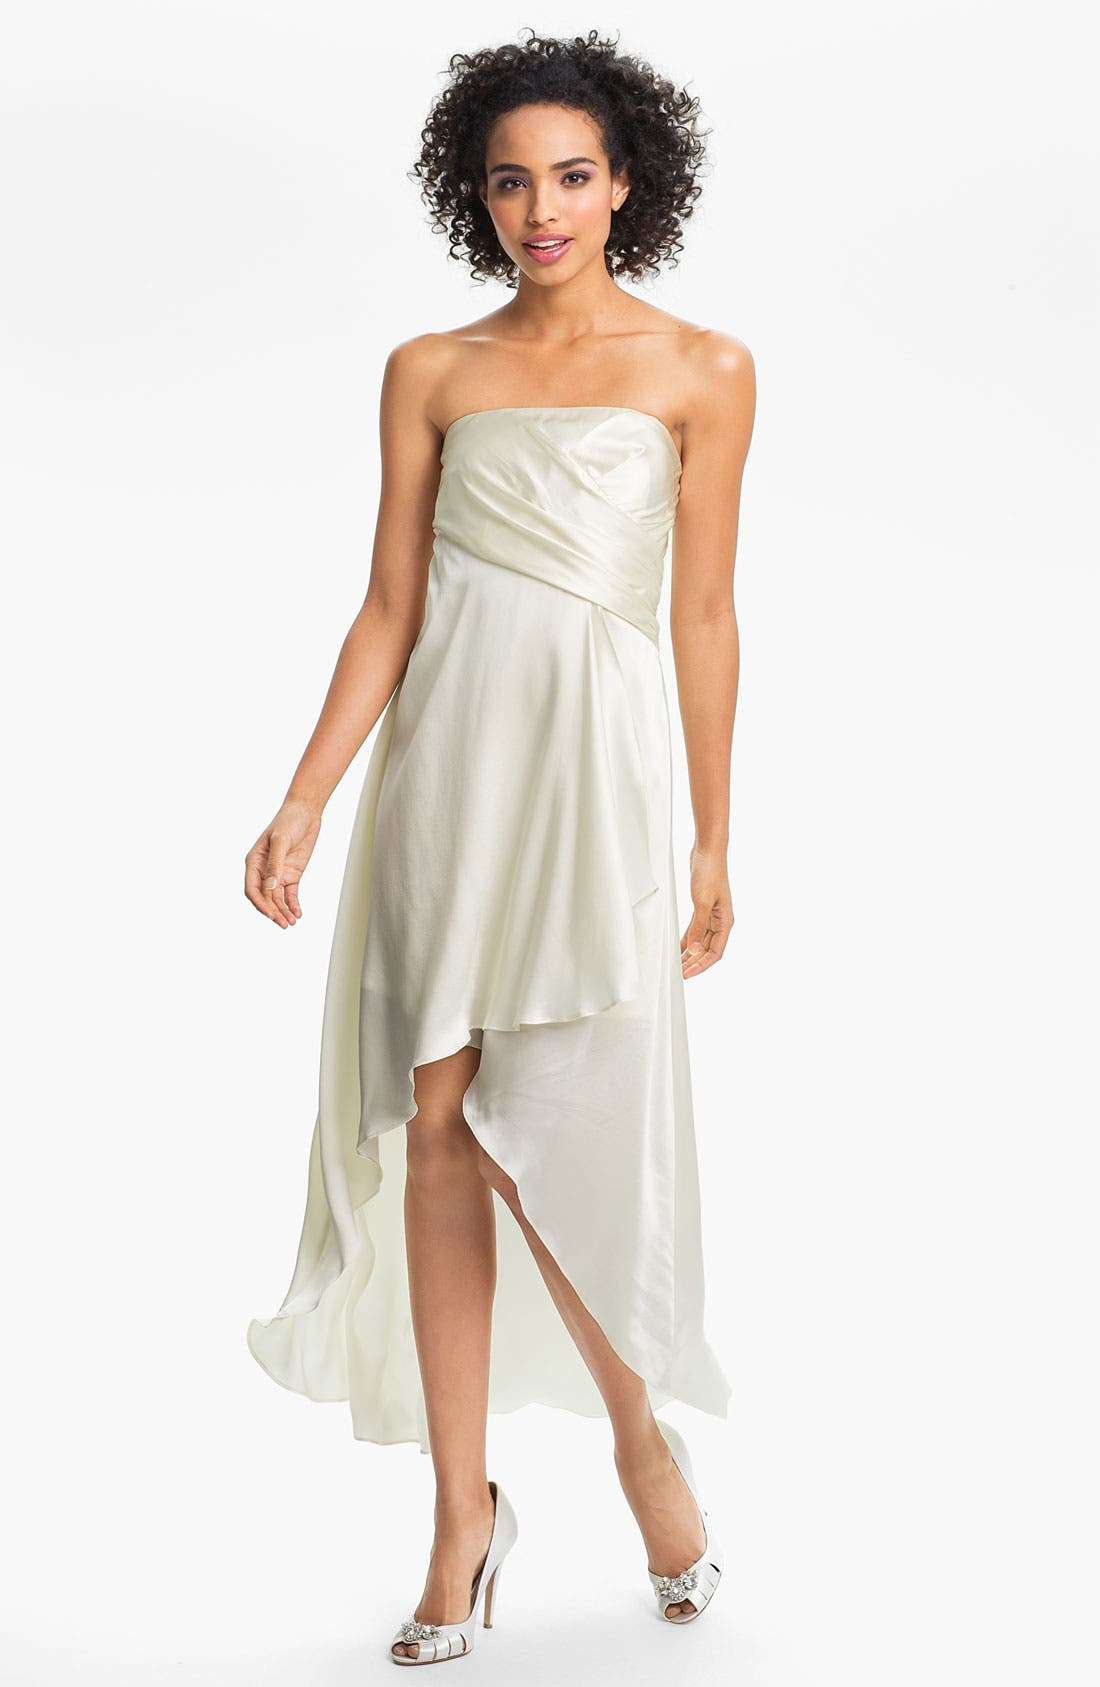 Main Image - Alexia Admor Strapless Silk Charmeuse Dress